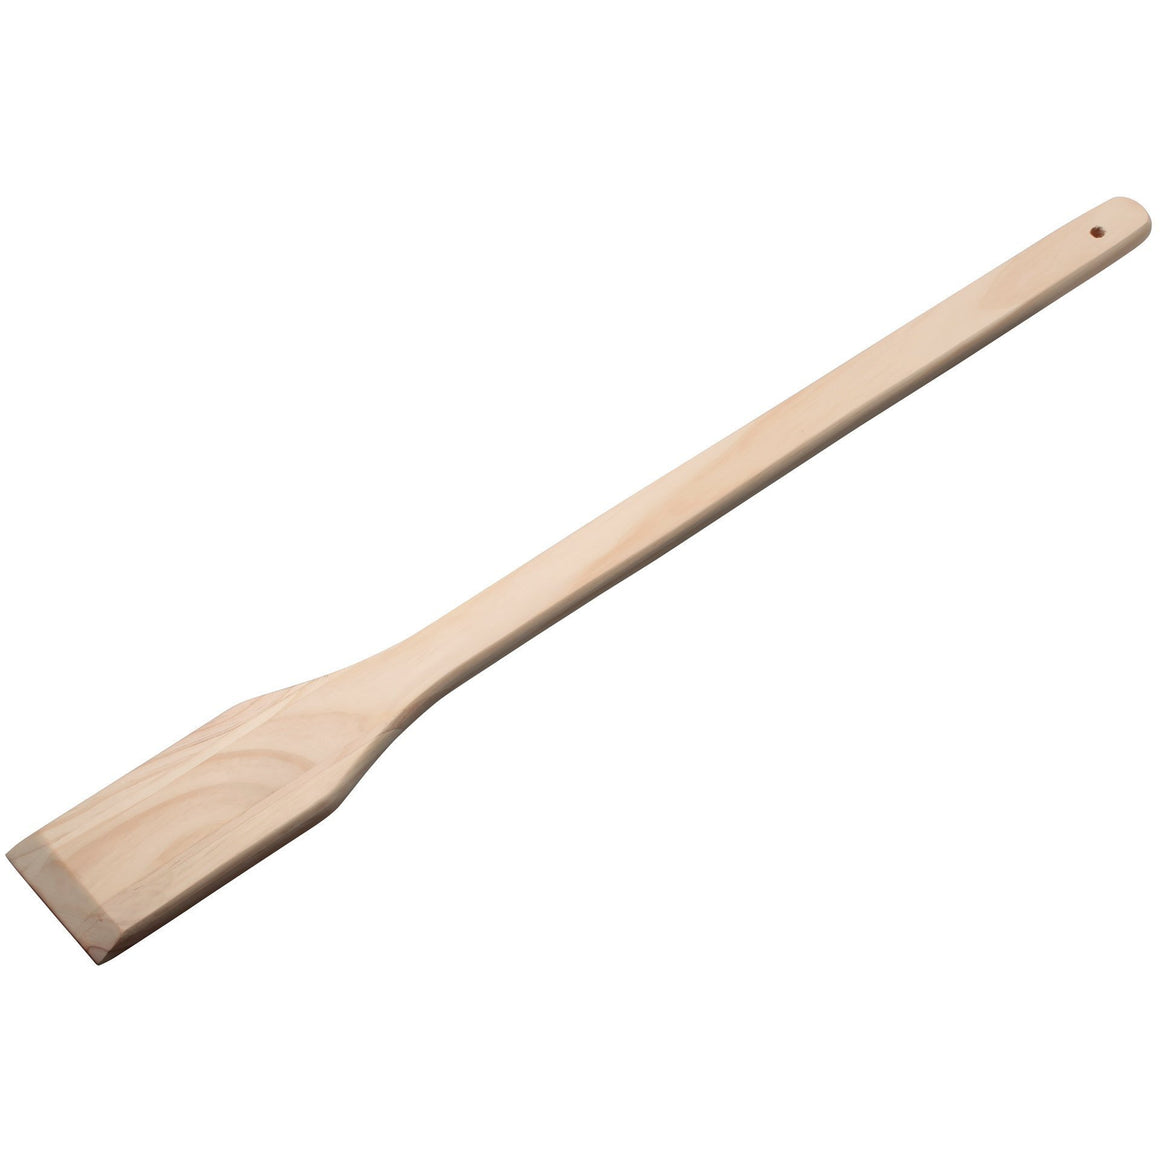 "Winco - WSP-36 - 36"" Stirring Paddle, Wooden - Bakeware"